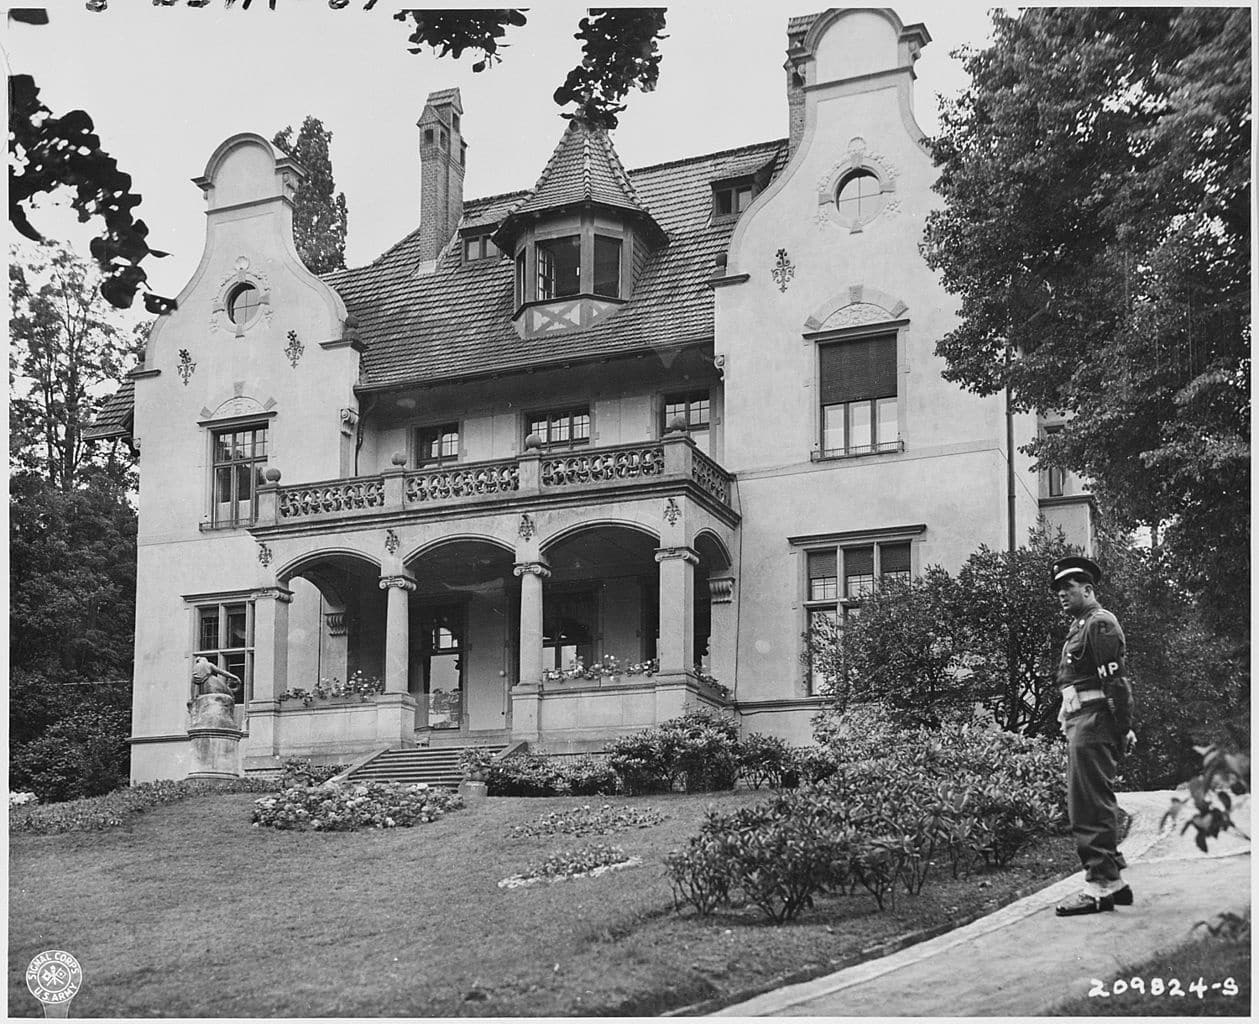 The Potsdam Conference - July 16th 1945 - Military Police stand guard in front of the 'Little White House'